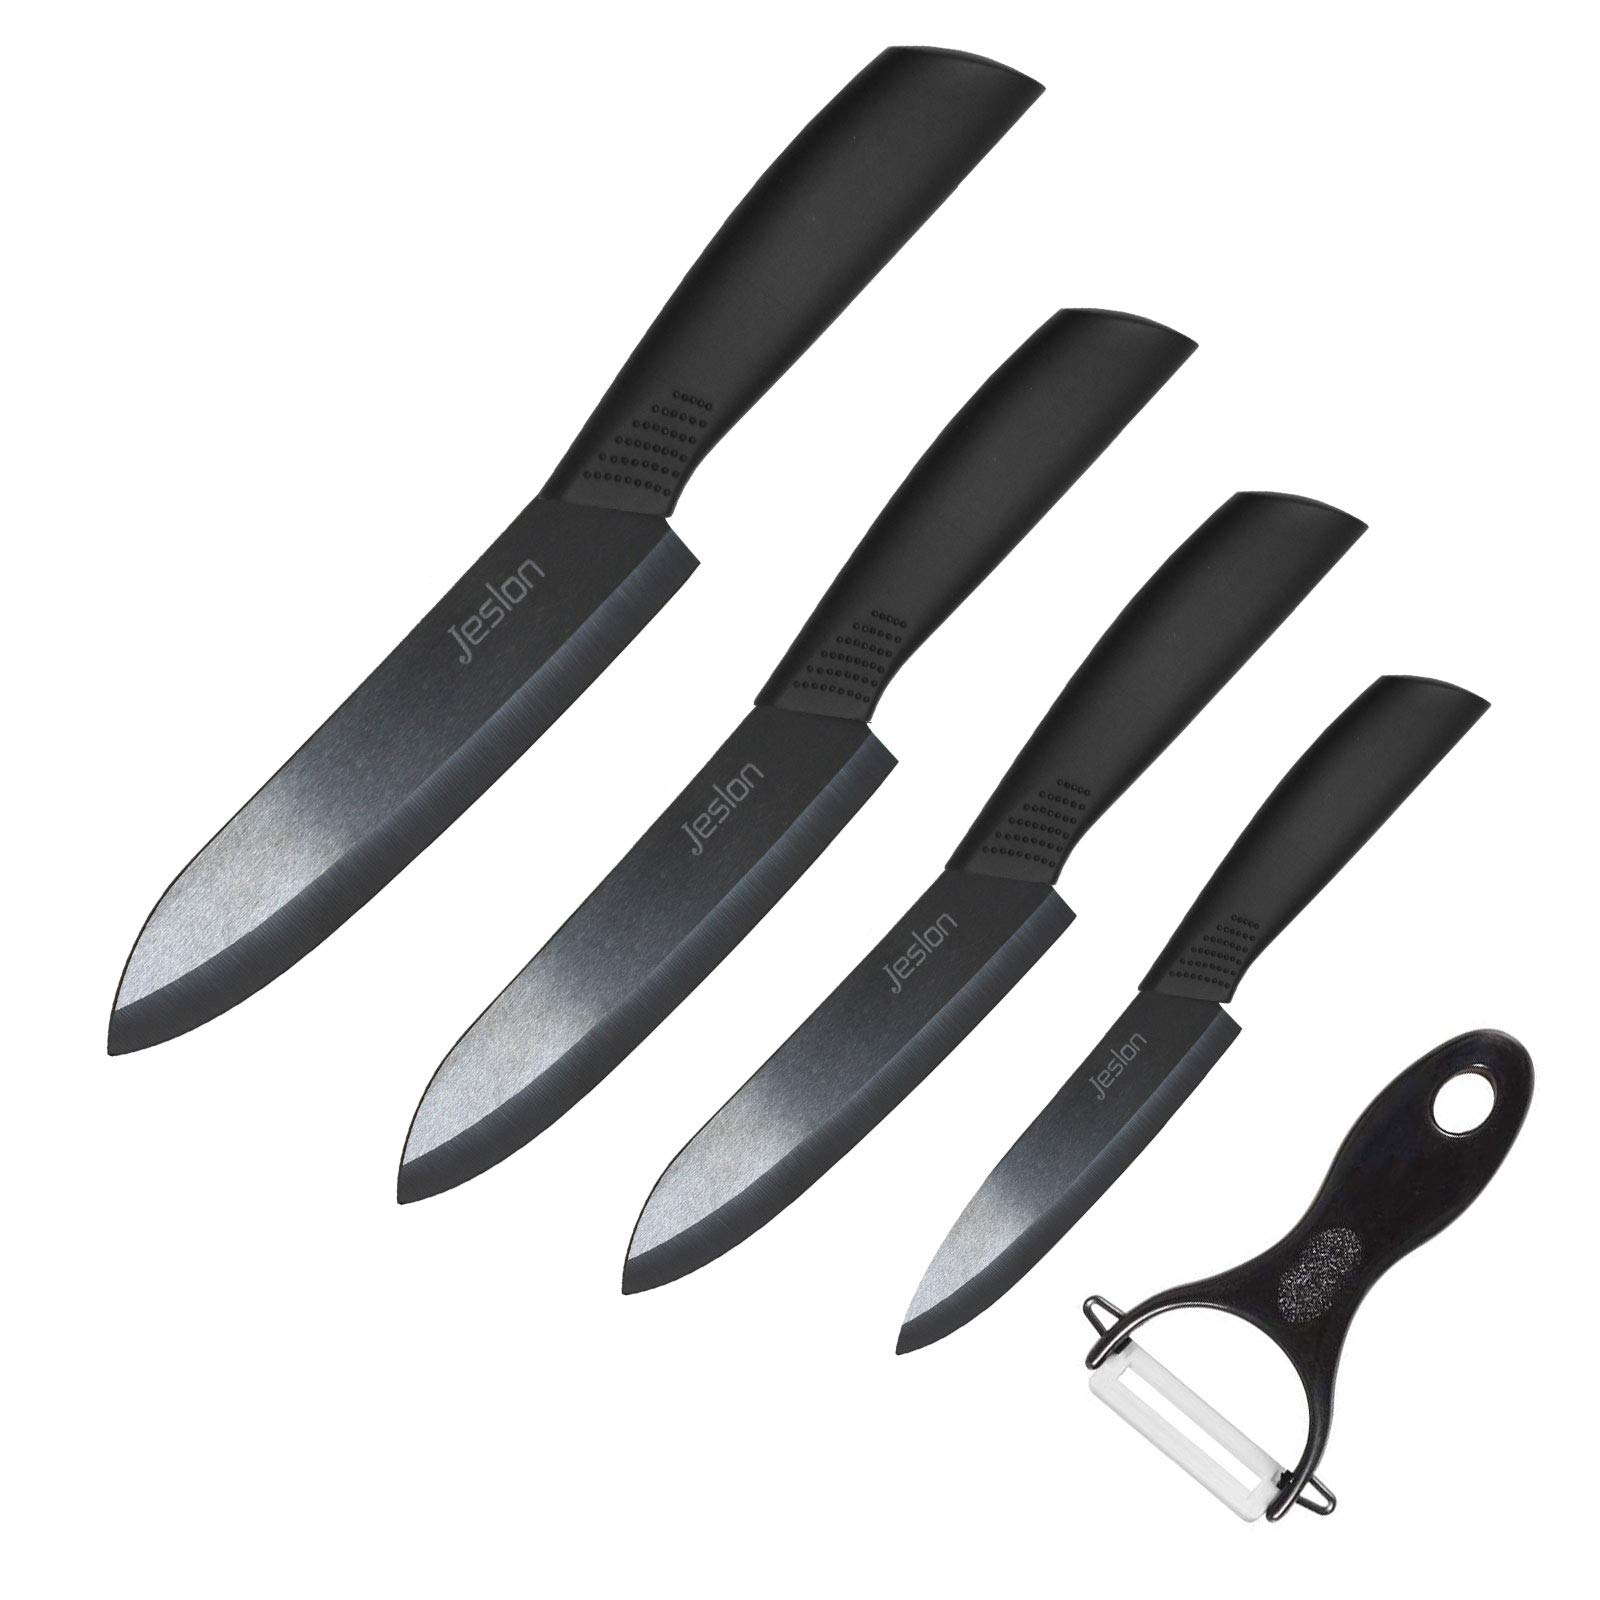 Jeslon Kitchen Knives Set, 5 Piece Ceramic Knives Black Blade 3inch Paring Knife, 4inch Fruit Knife, 5inch Utility Knife, 6inch Chef Knife and One Peeler